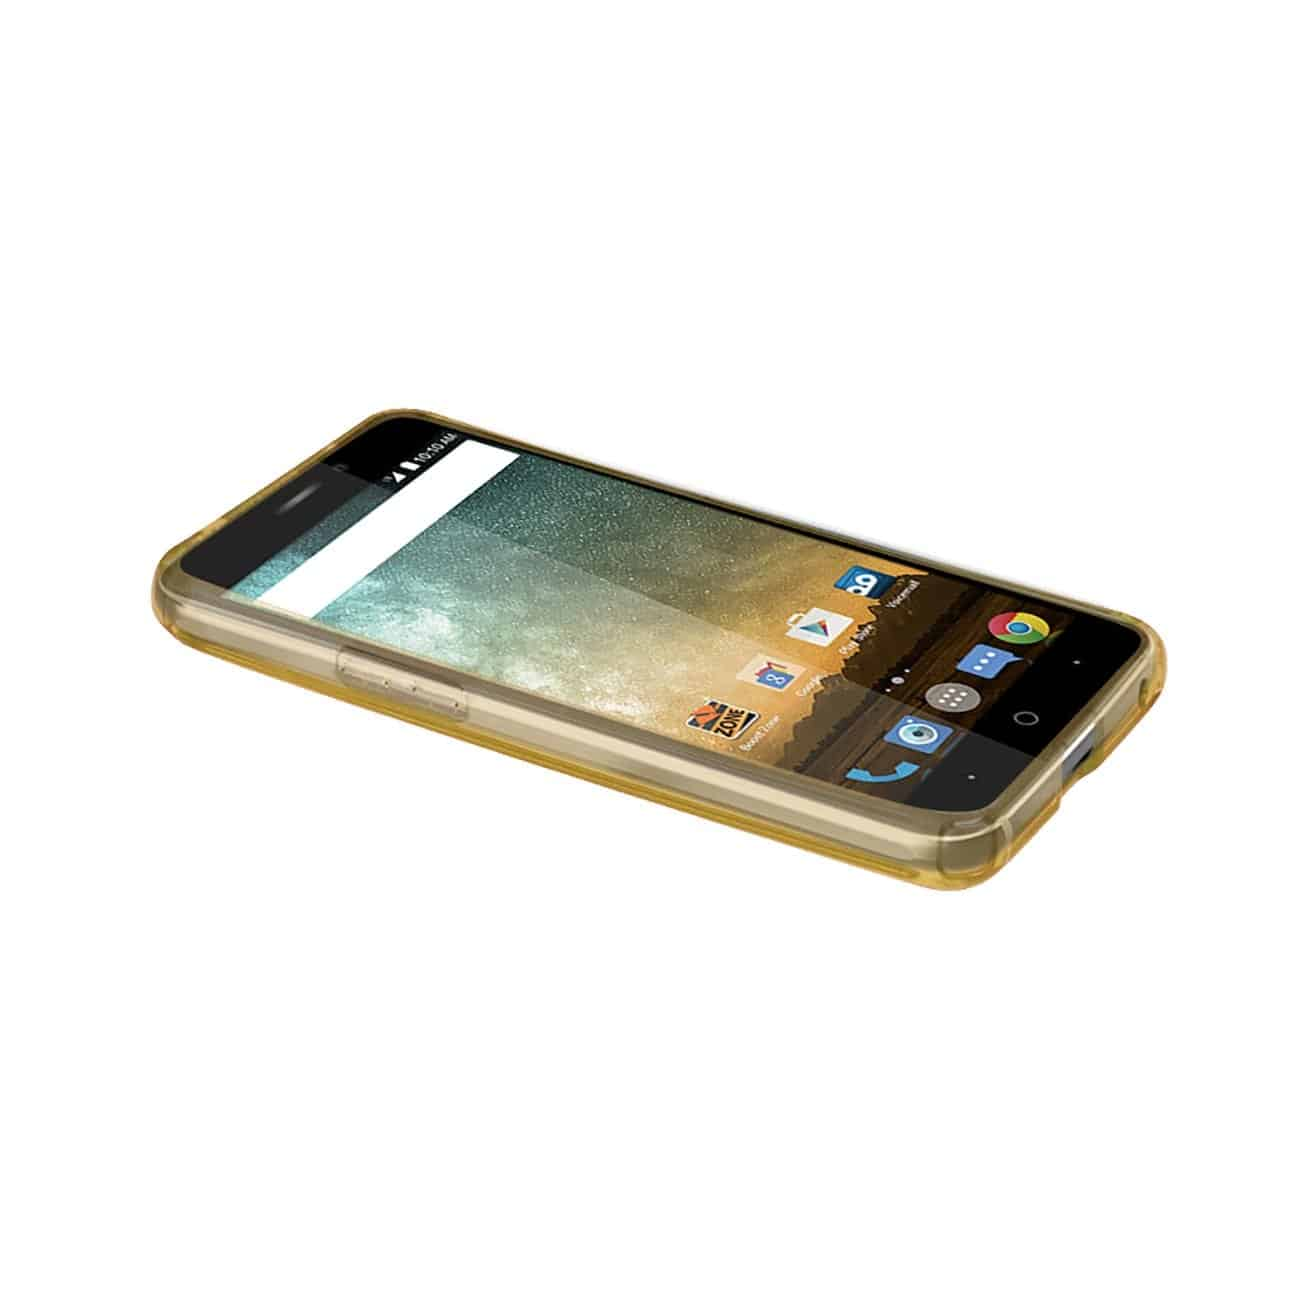 ZTE PRESTIGE MIRROR EFFECT CASE WITH AIR CUSHION PROTECTION IN CLEAR GOLD